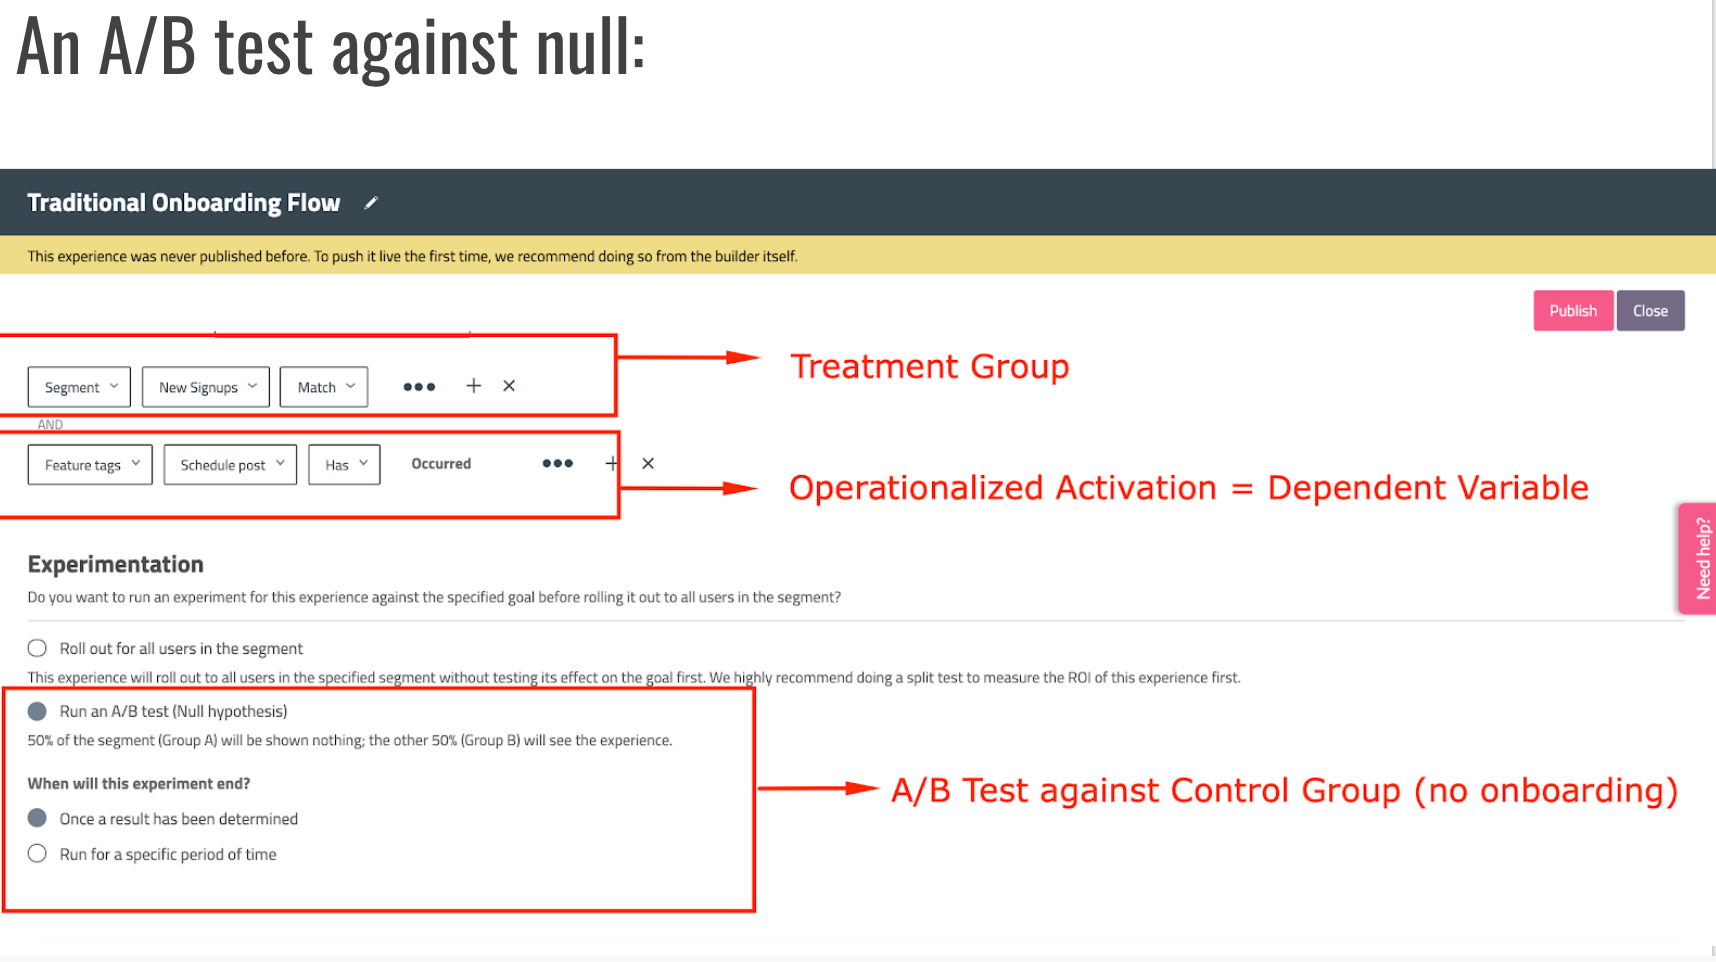 A:B test against null